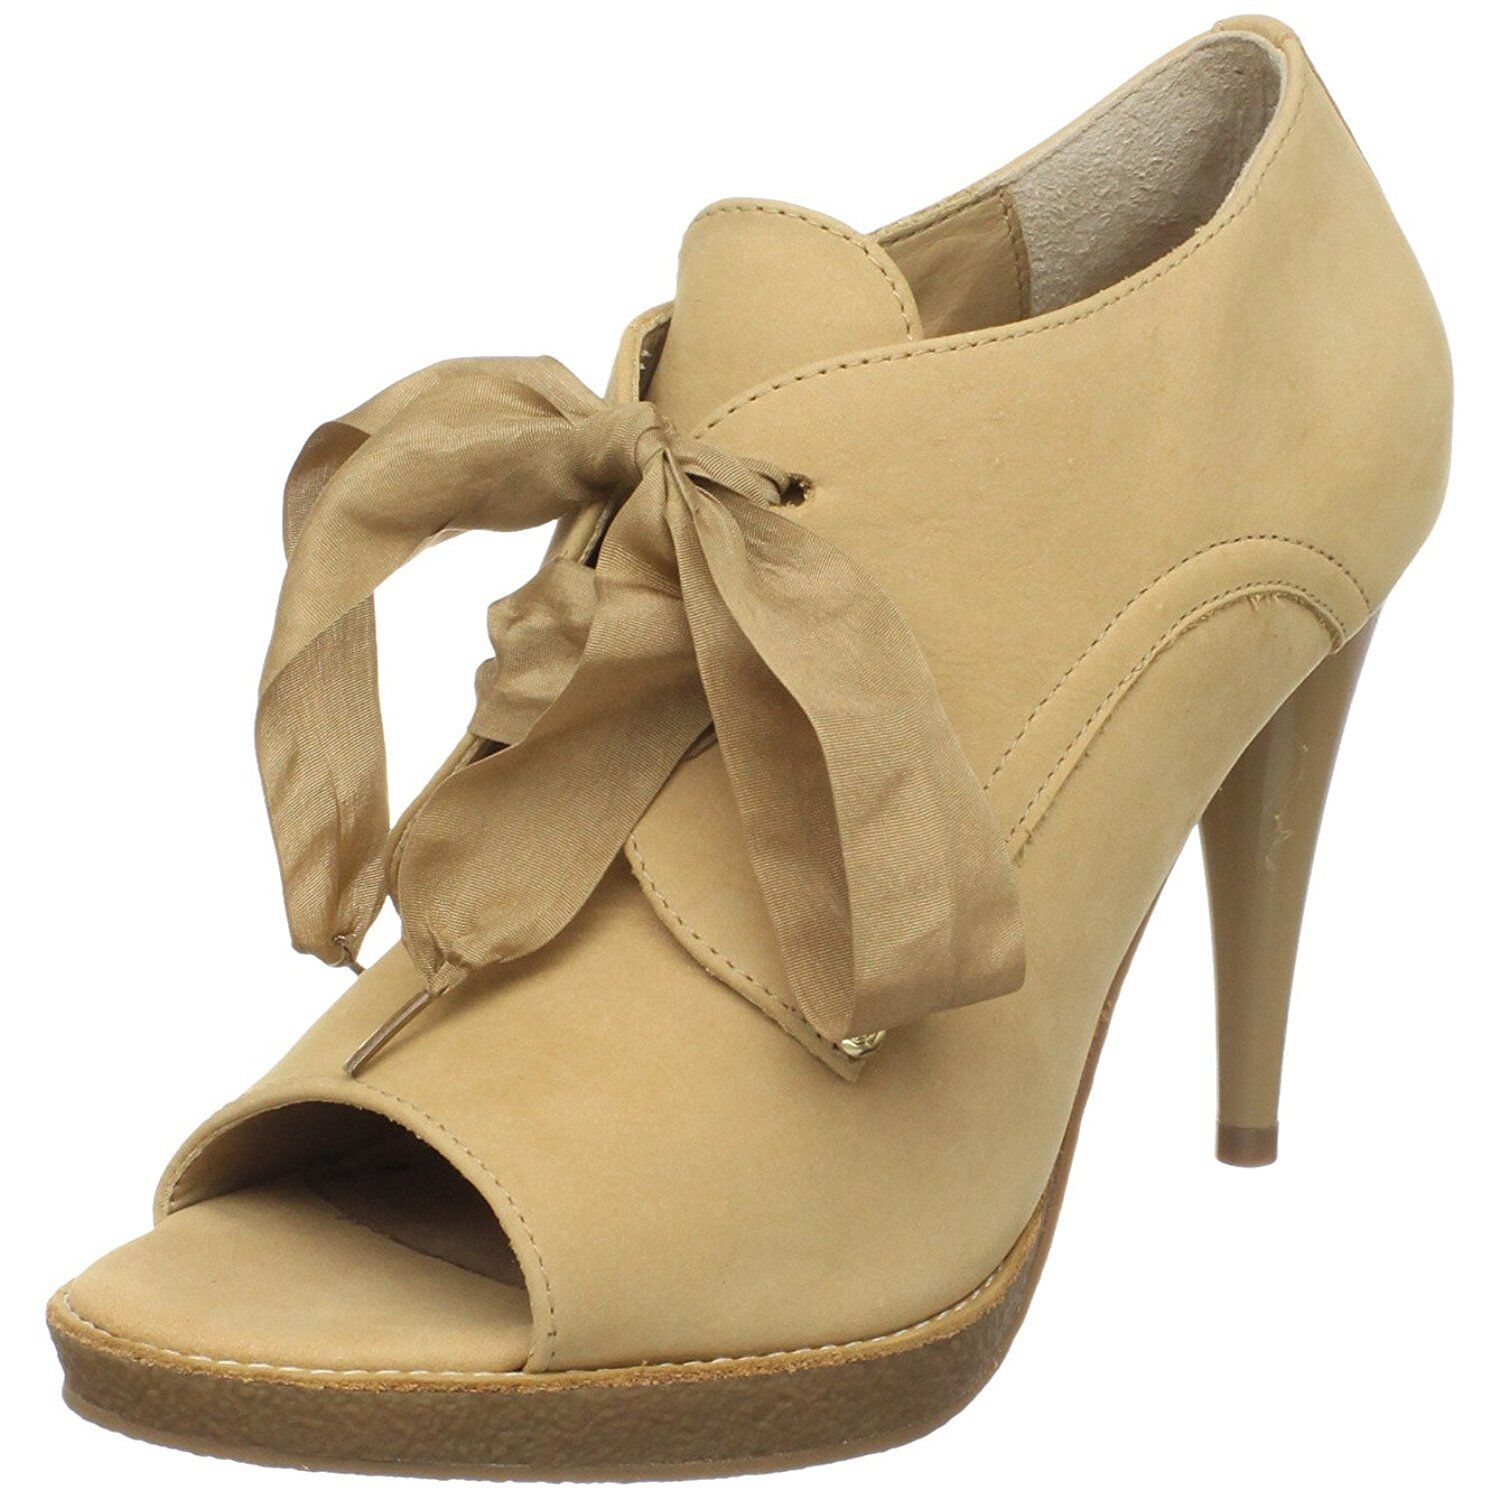 Juicy Couture Georgine Open Toe Bootie Heels shoes in Natural Suede Size 7.5